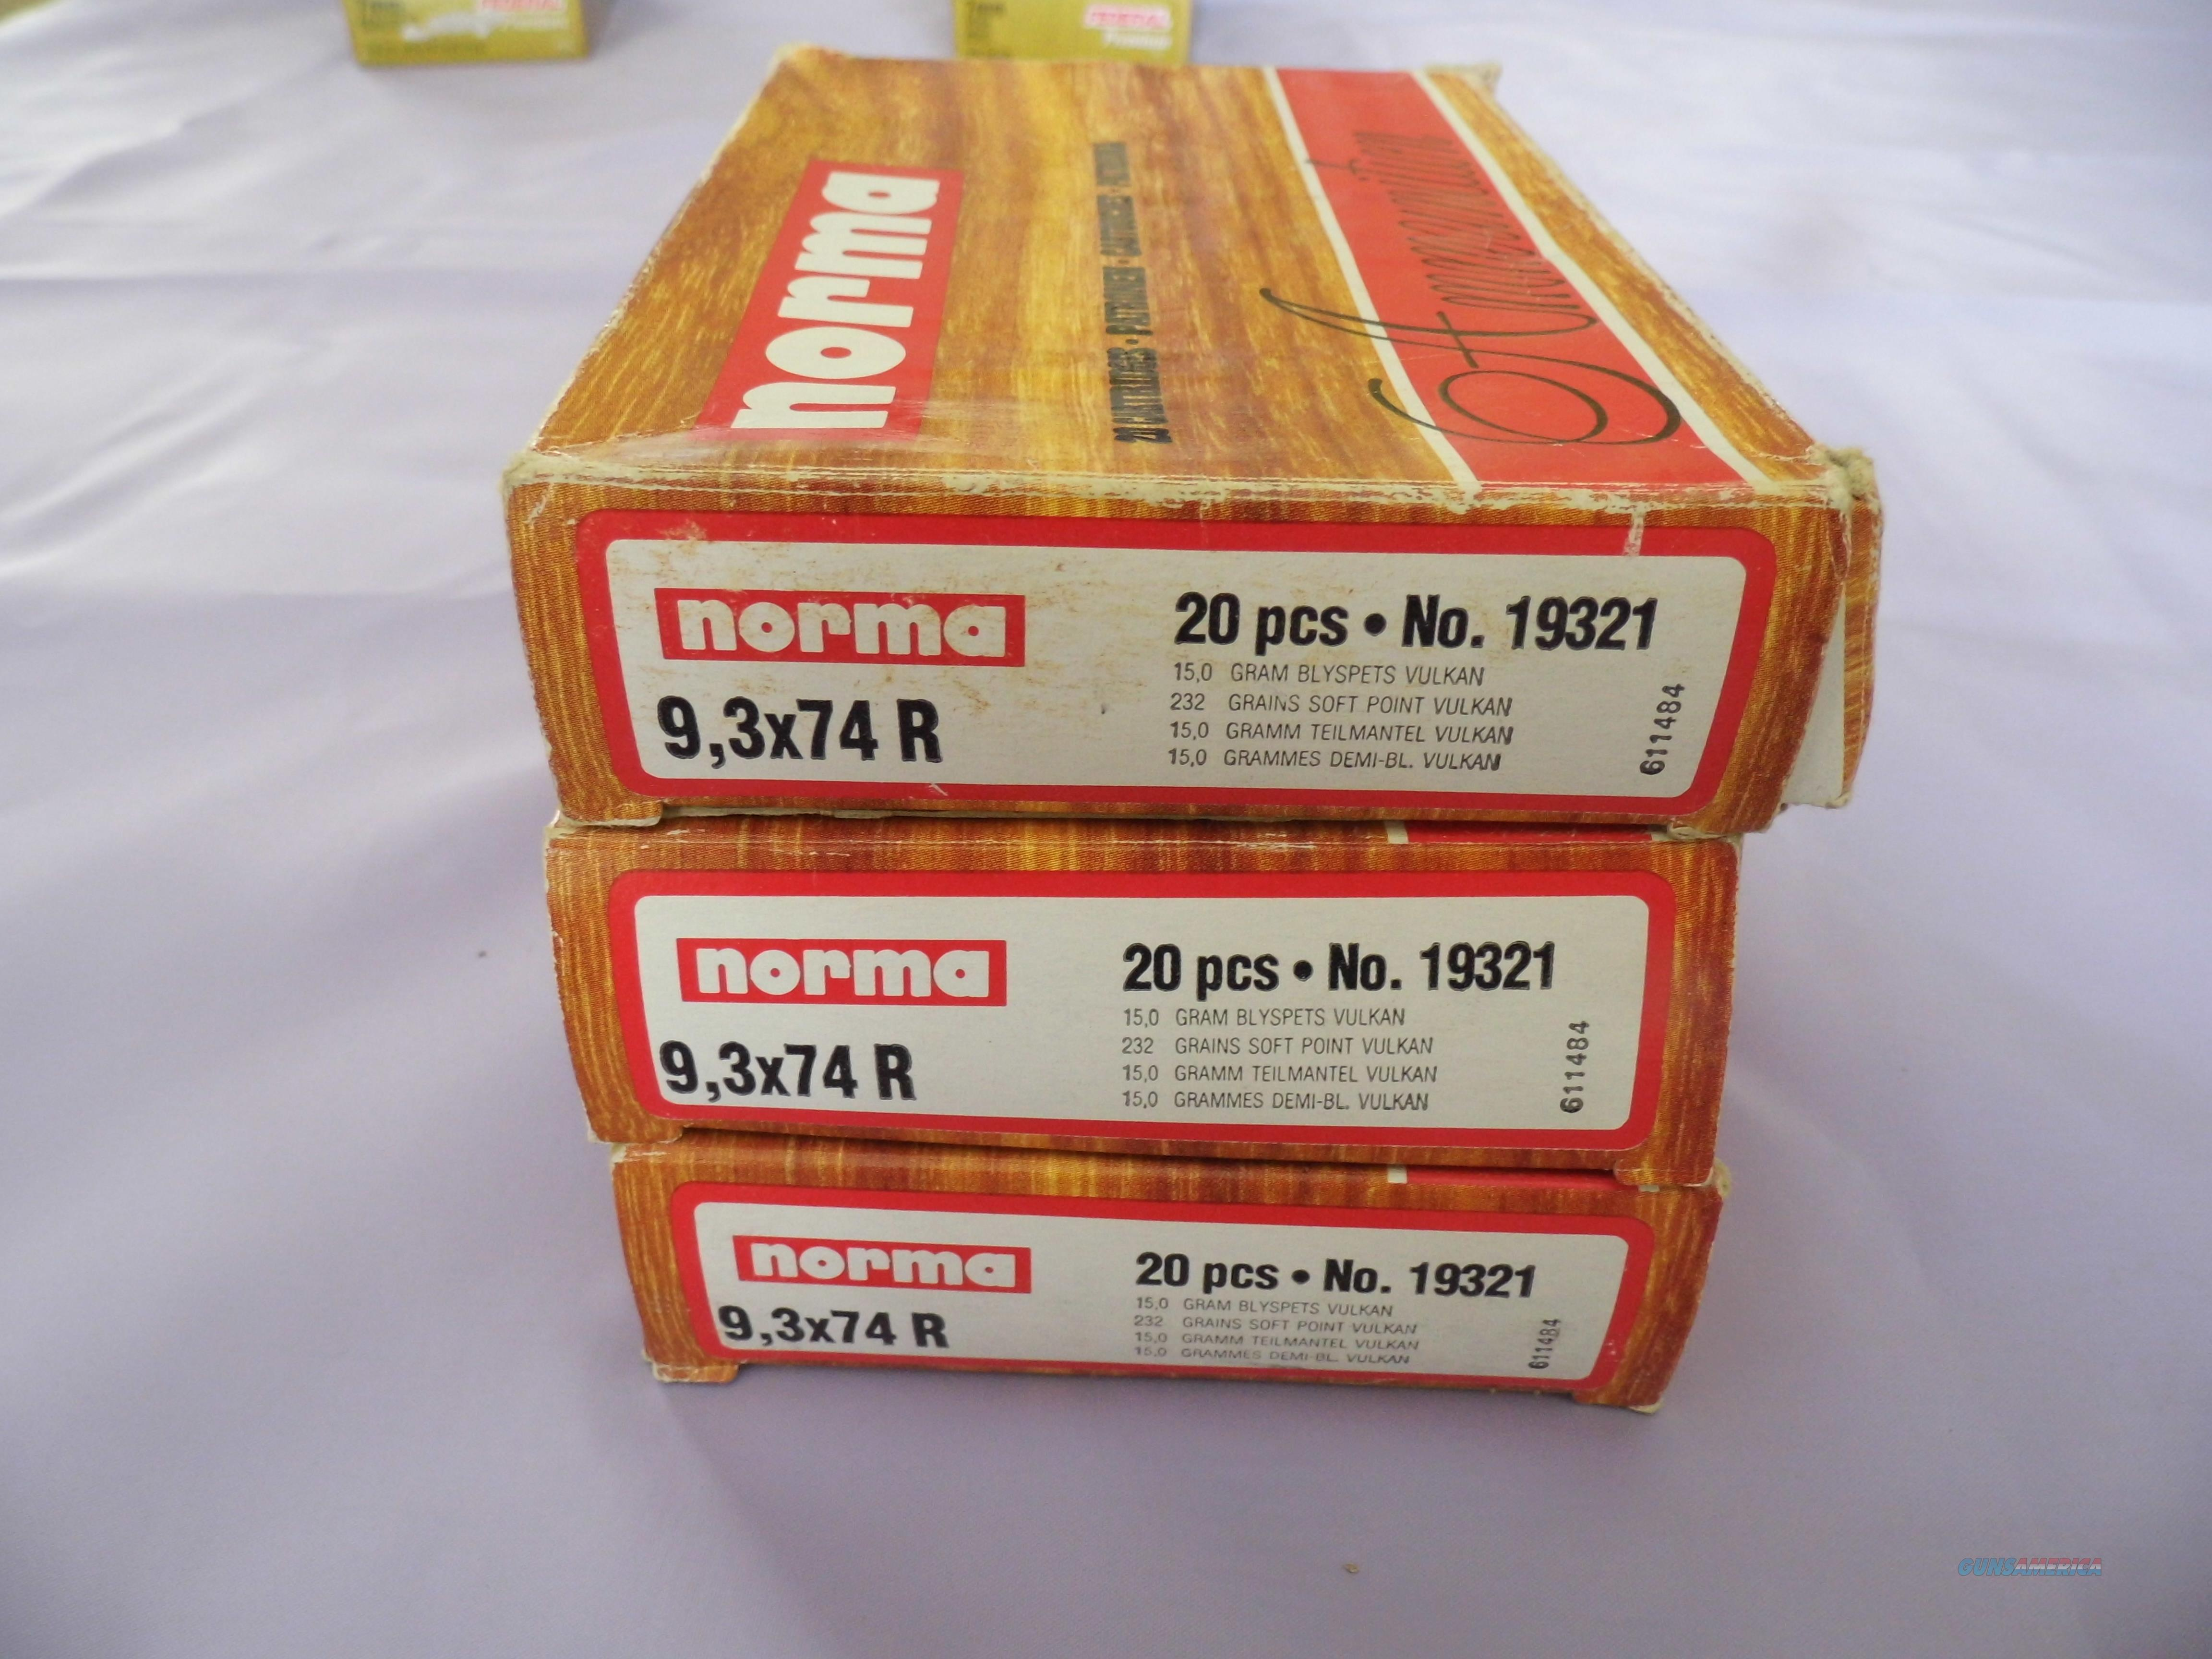 9,3 X 74 R, Norma, 3 full boxes & 8 rounds, 68 rounds total with 30 rounds of spent Cartridges for reloading.  Non-Guns > Ammunition